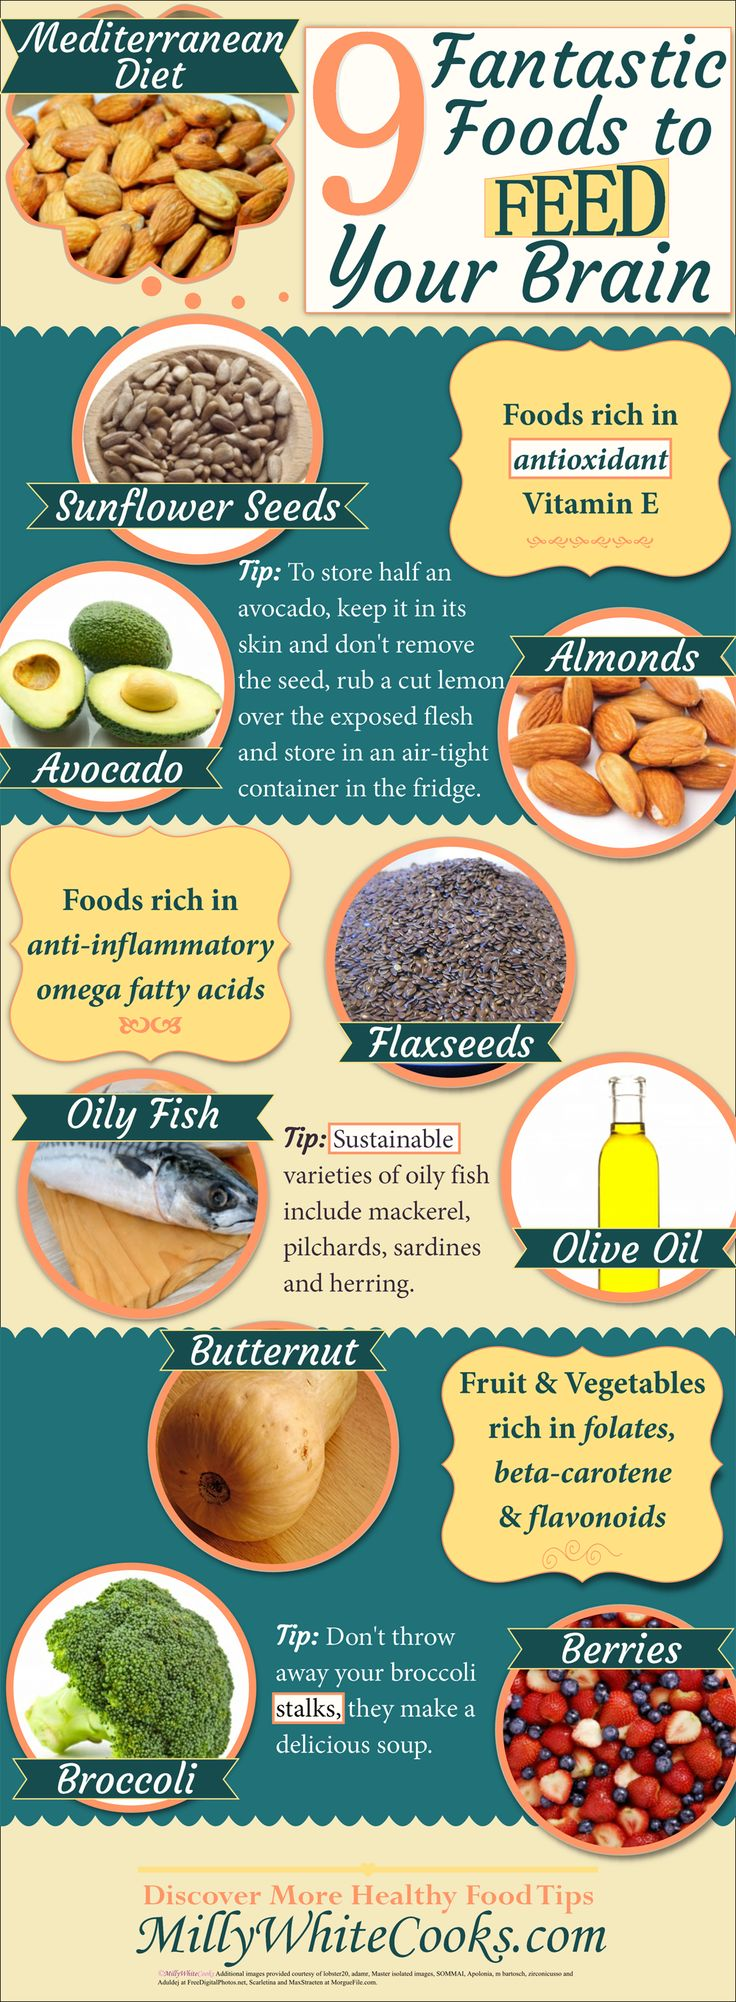 You probably know that the Mediterranean Diet can help lower cholesterol but did you know that it can also help prevent cognitive decline in older age? Discover 9 Fantastic Foods to Feed Your Brain on the #Mediterraneandiet @ http://www.millywhitecooks.com/2015/08/9-Fantastic-Foods-For-Brain-Health-Mediterranean-Diet.html #infographic #healthyeating